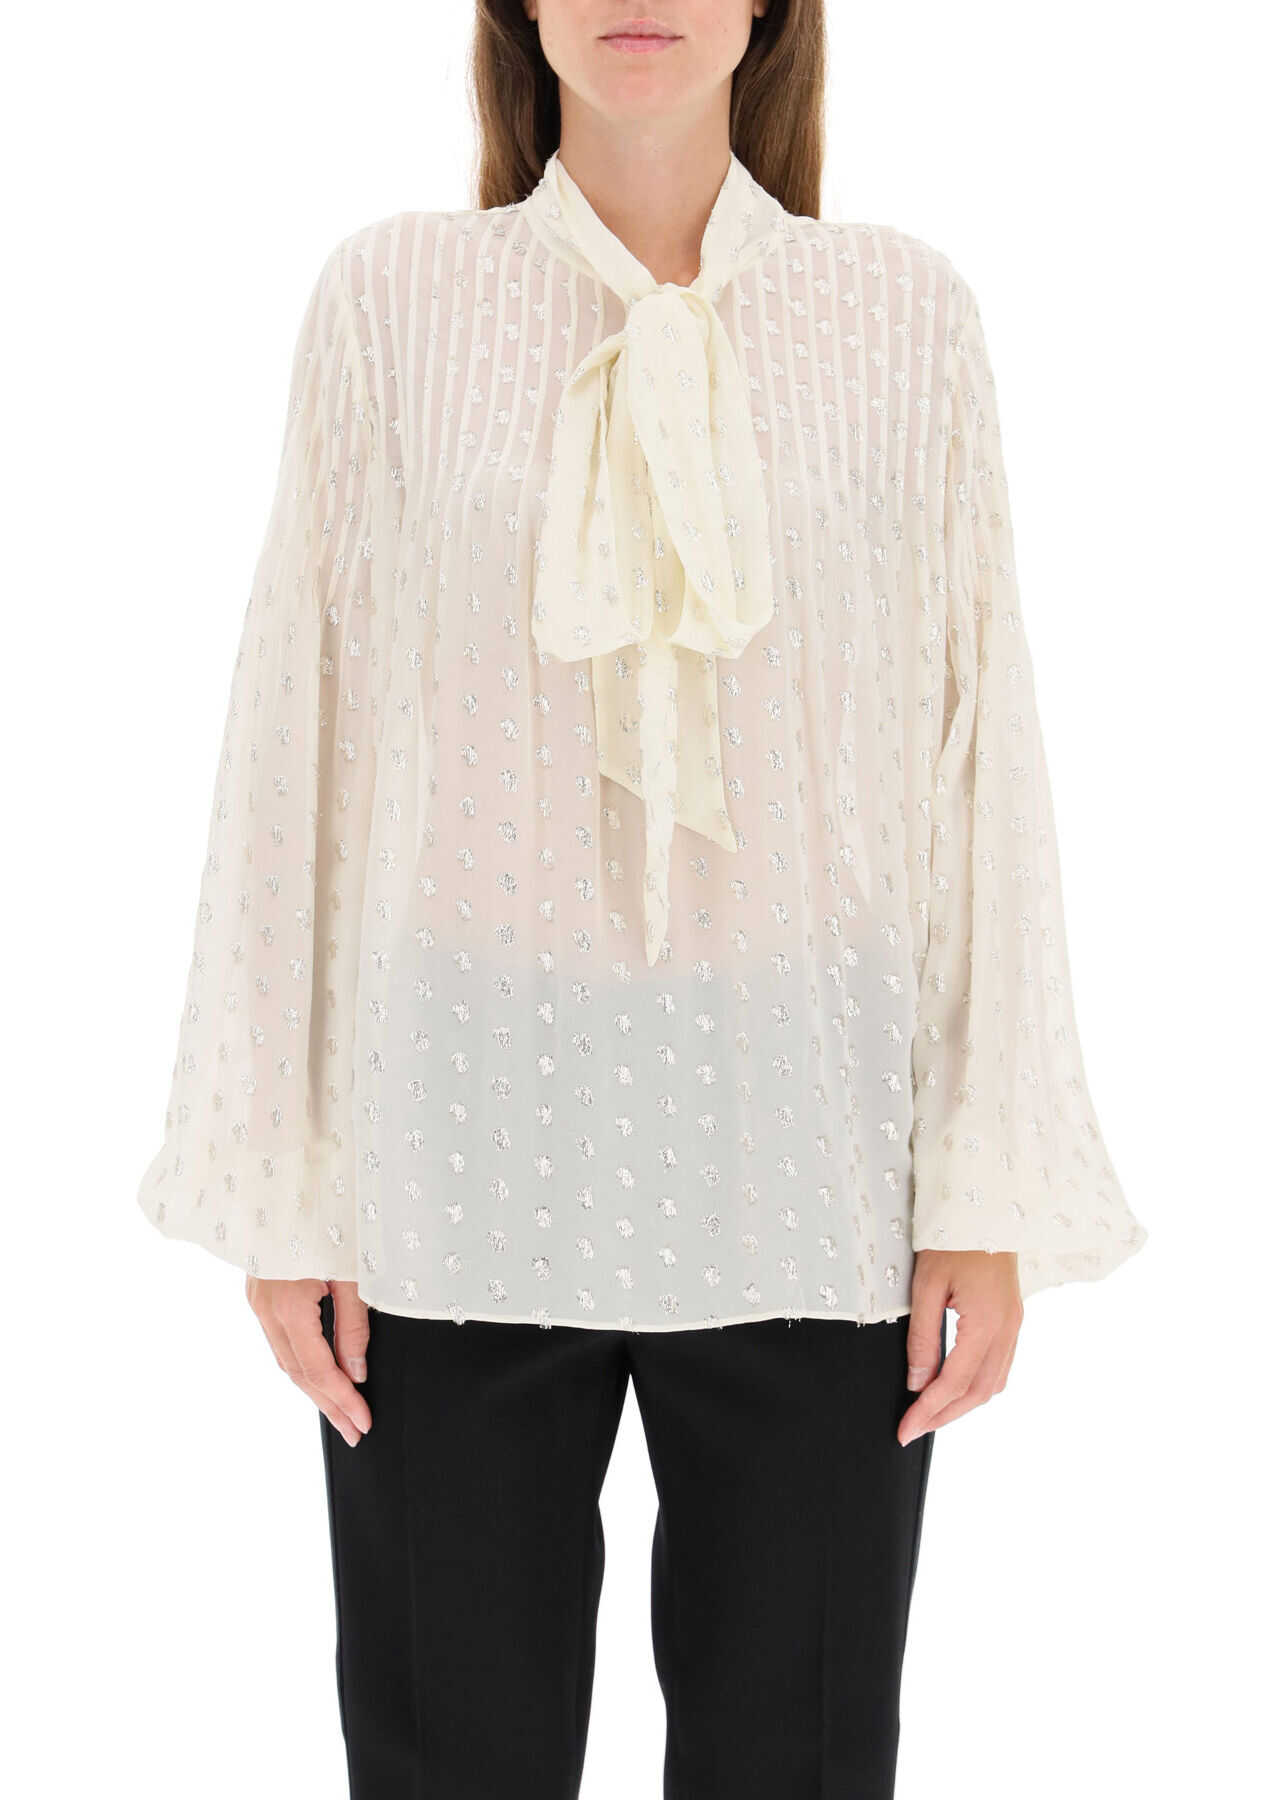 Self-Portrait Fil Coupe Shirt With Lavalliere AW20 029A IVORY image0